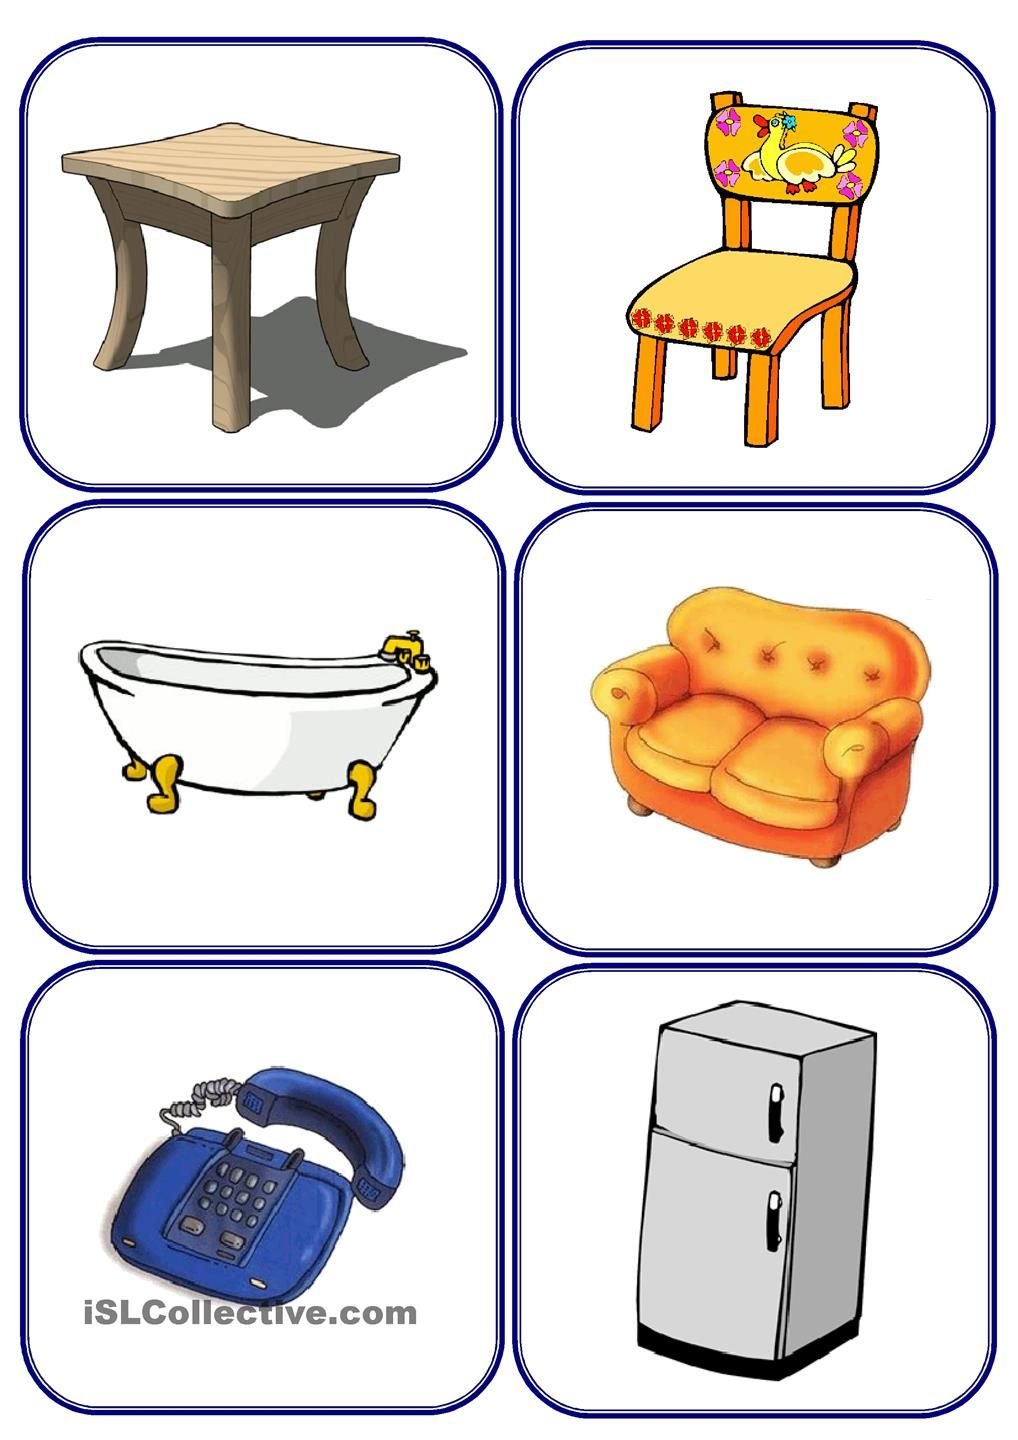 Exceptional Furniture And Parts Of The House Flashcards